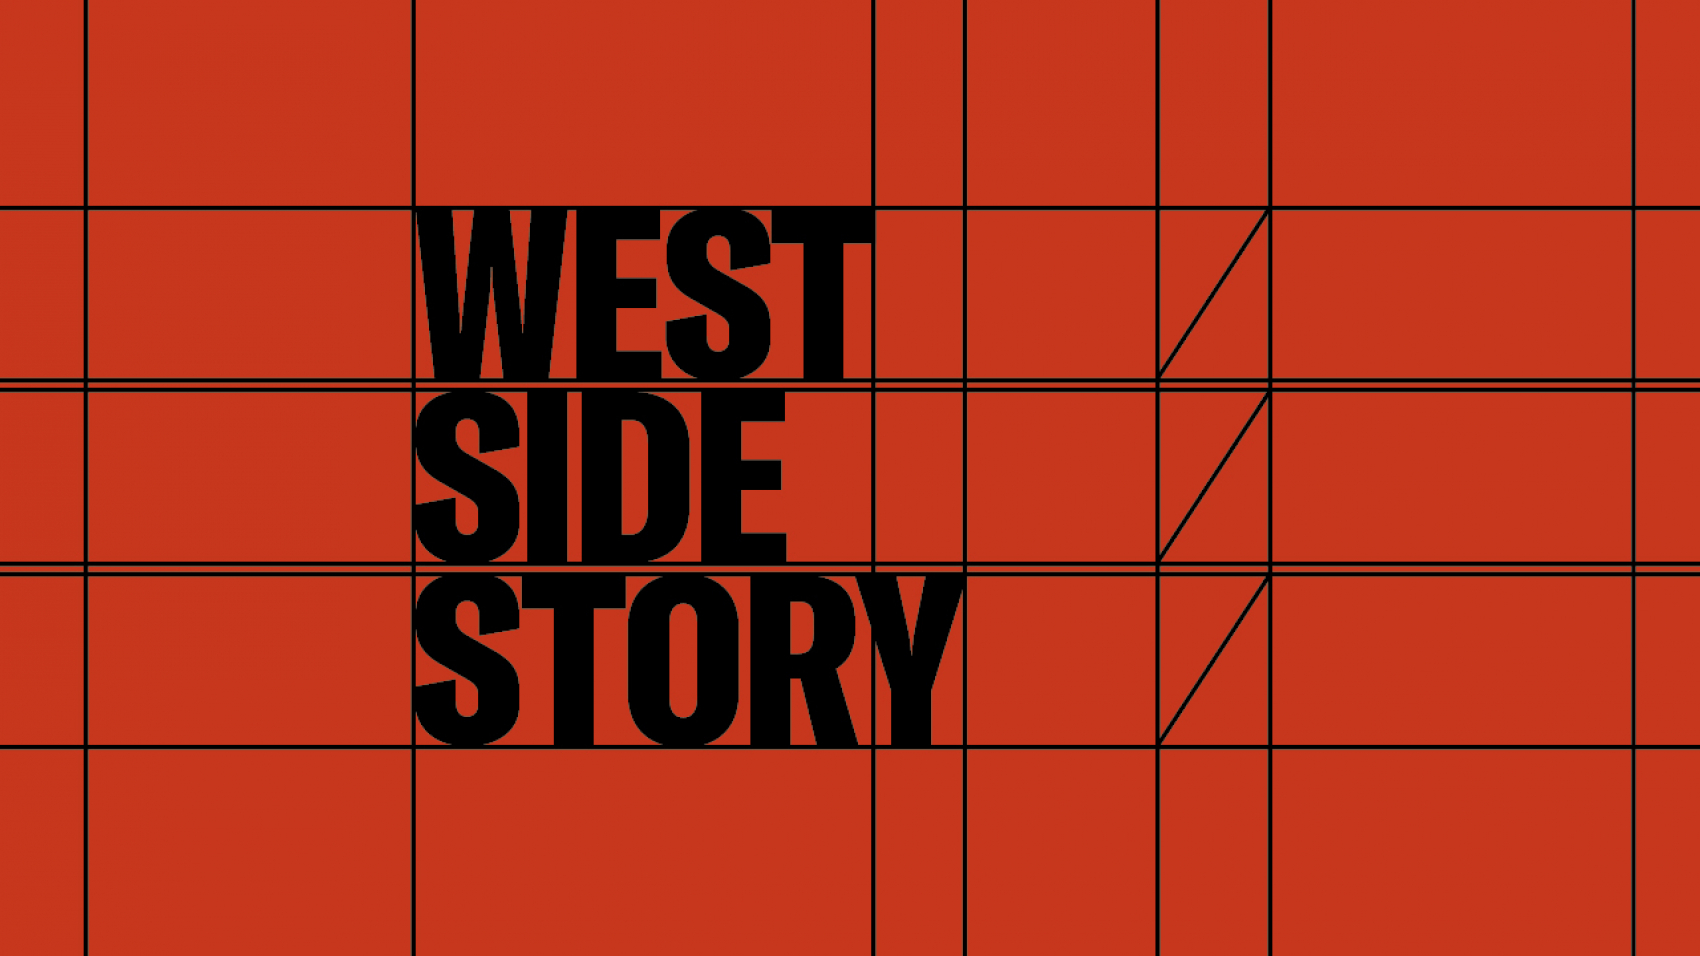 West Side Story - live in concert